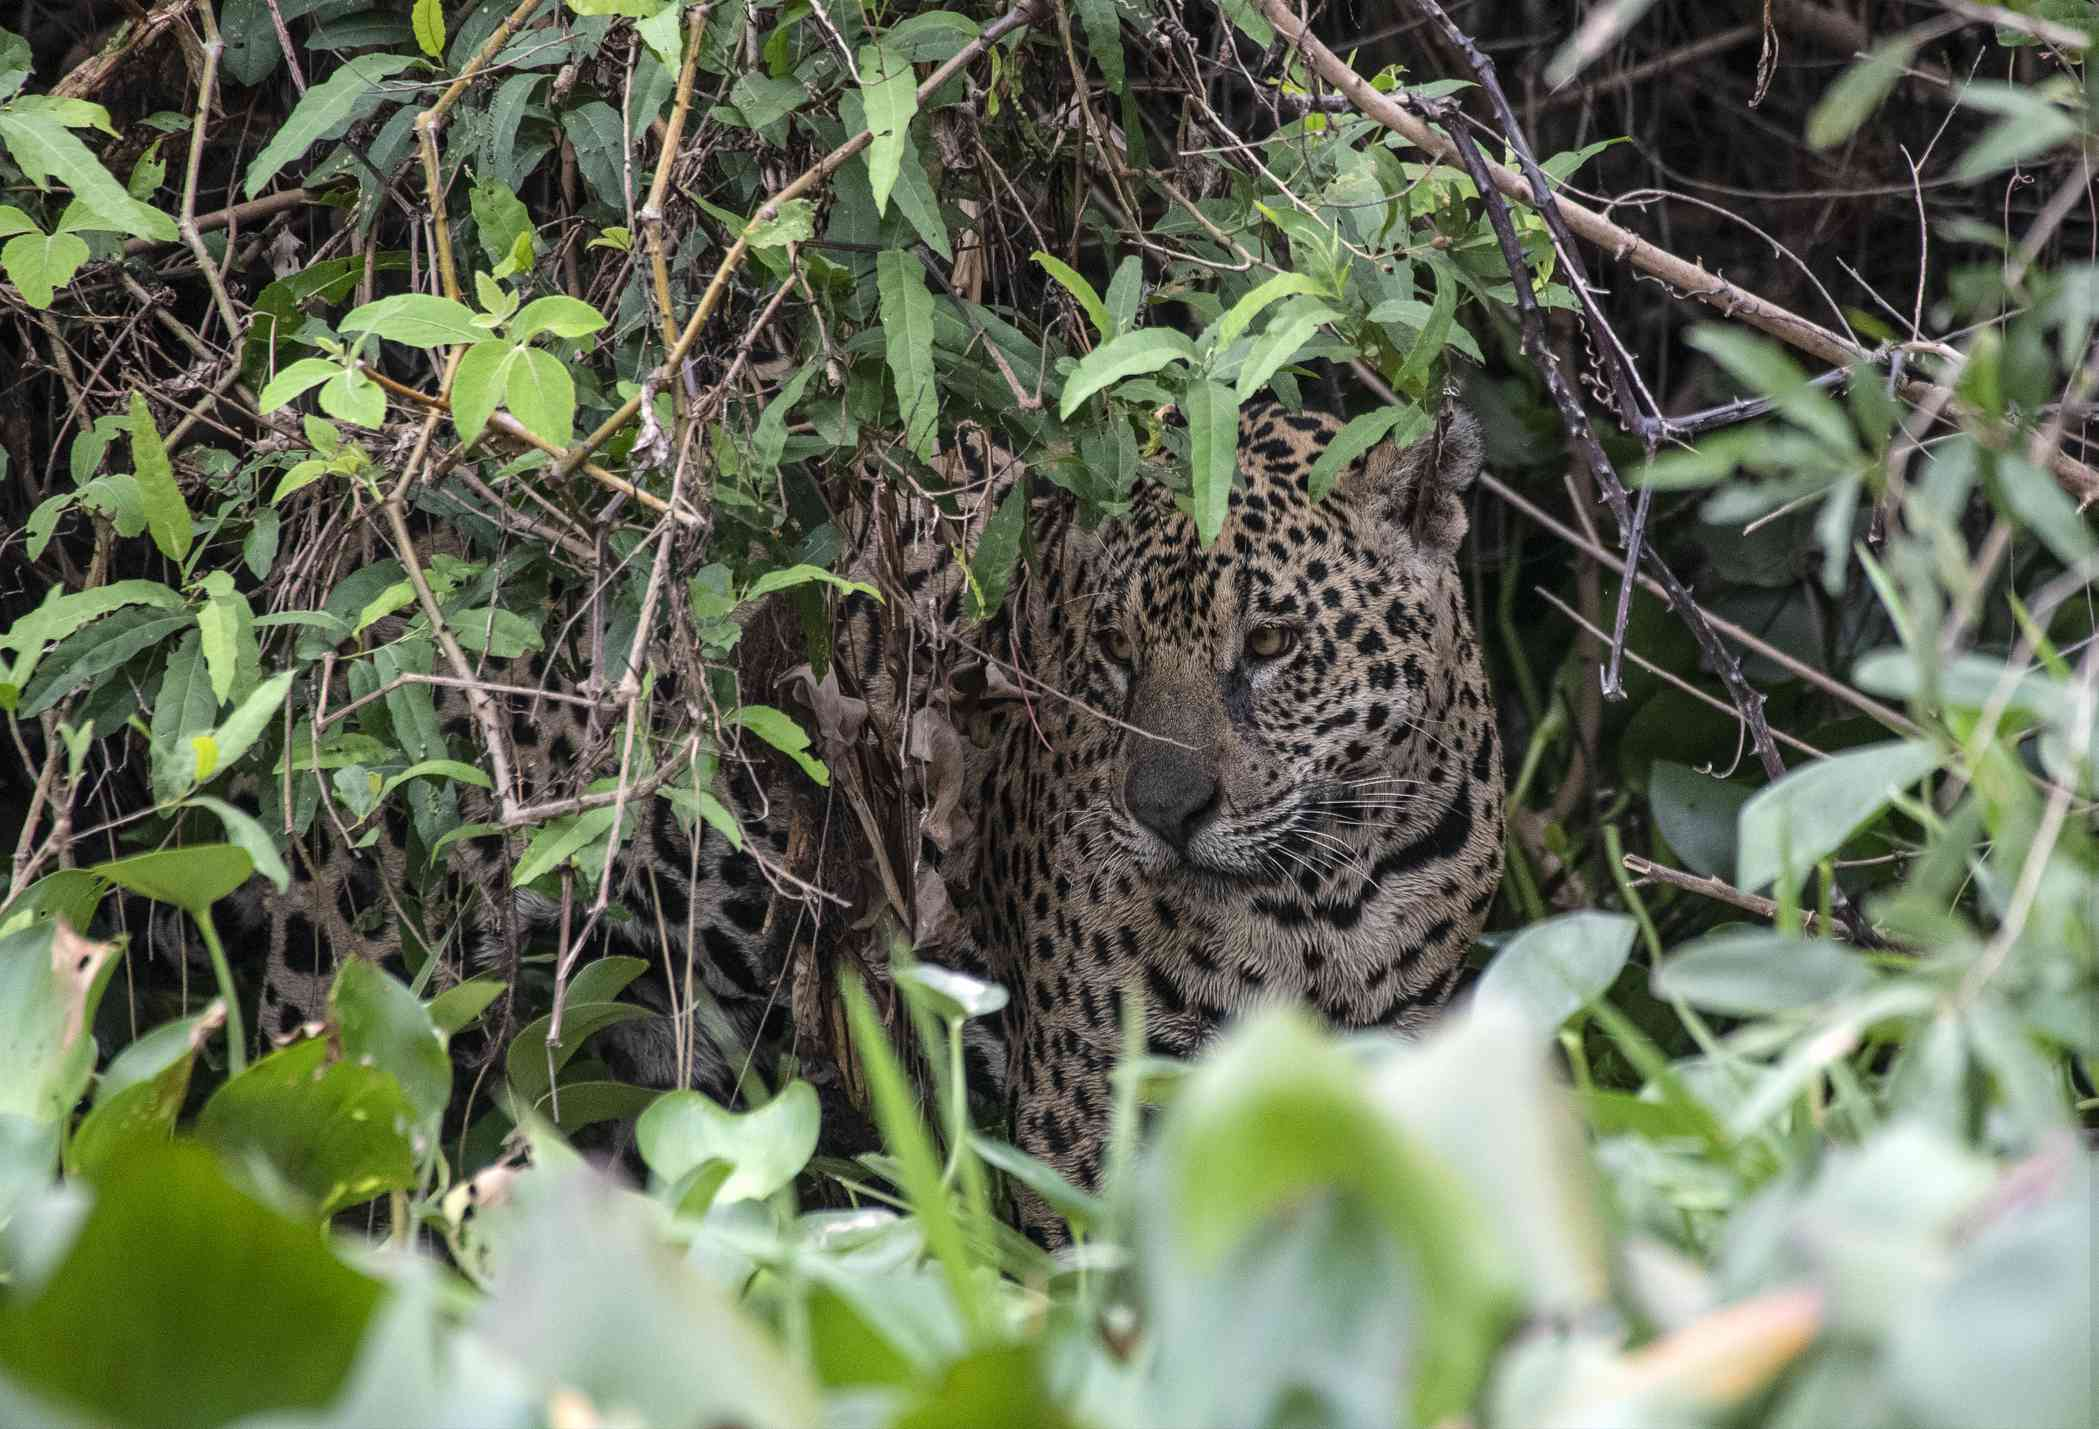 jaguar in grass peeks out from behind bush branches